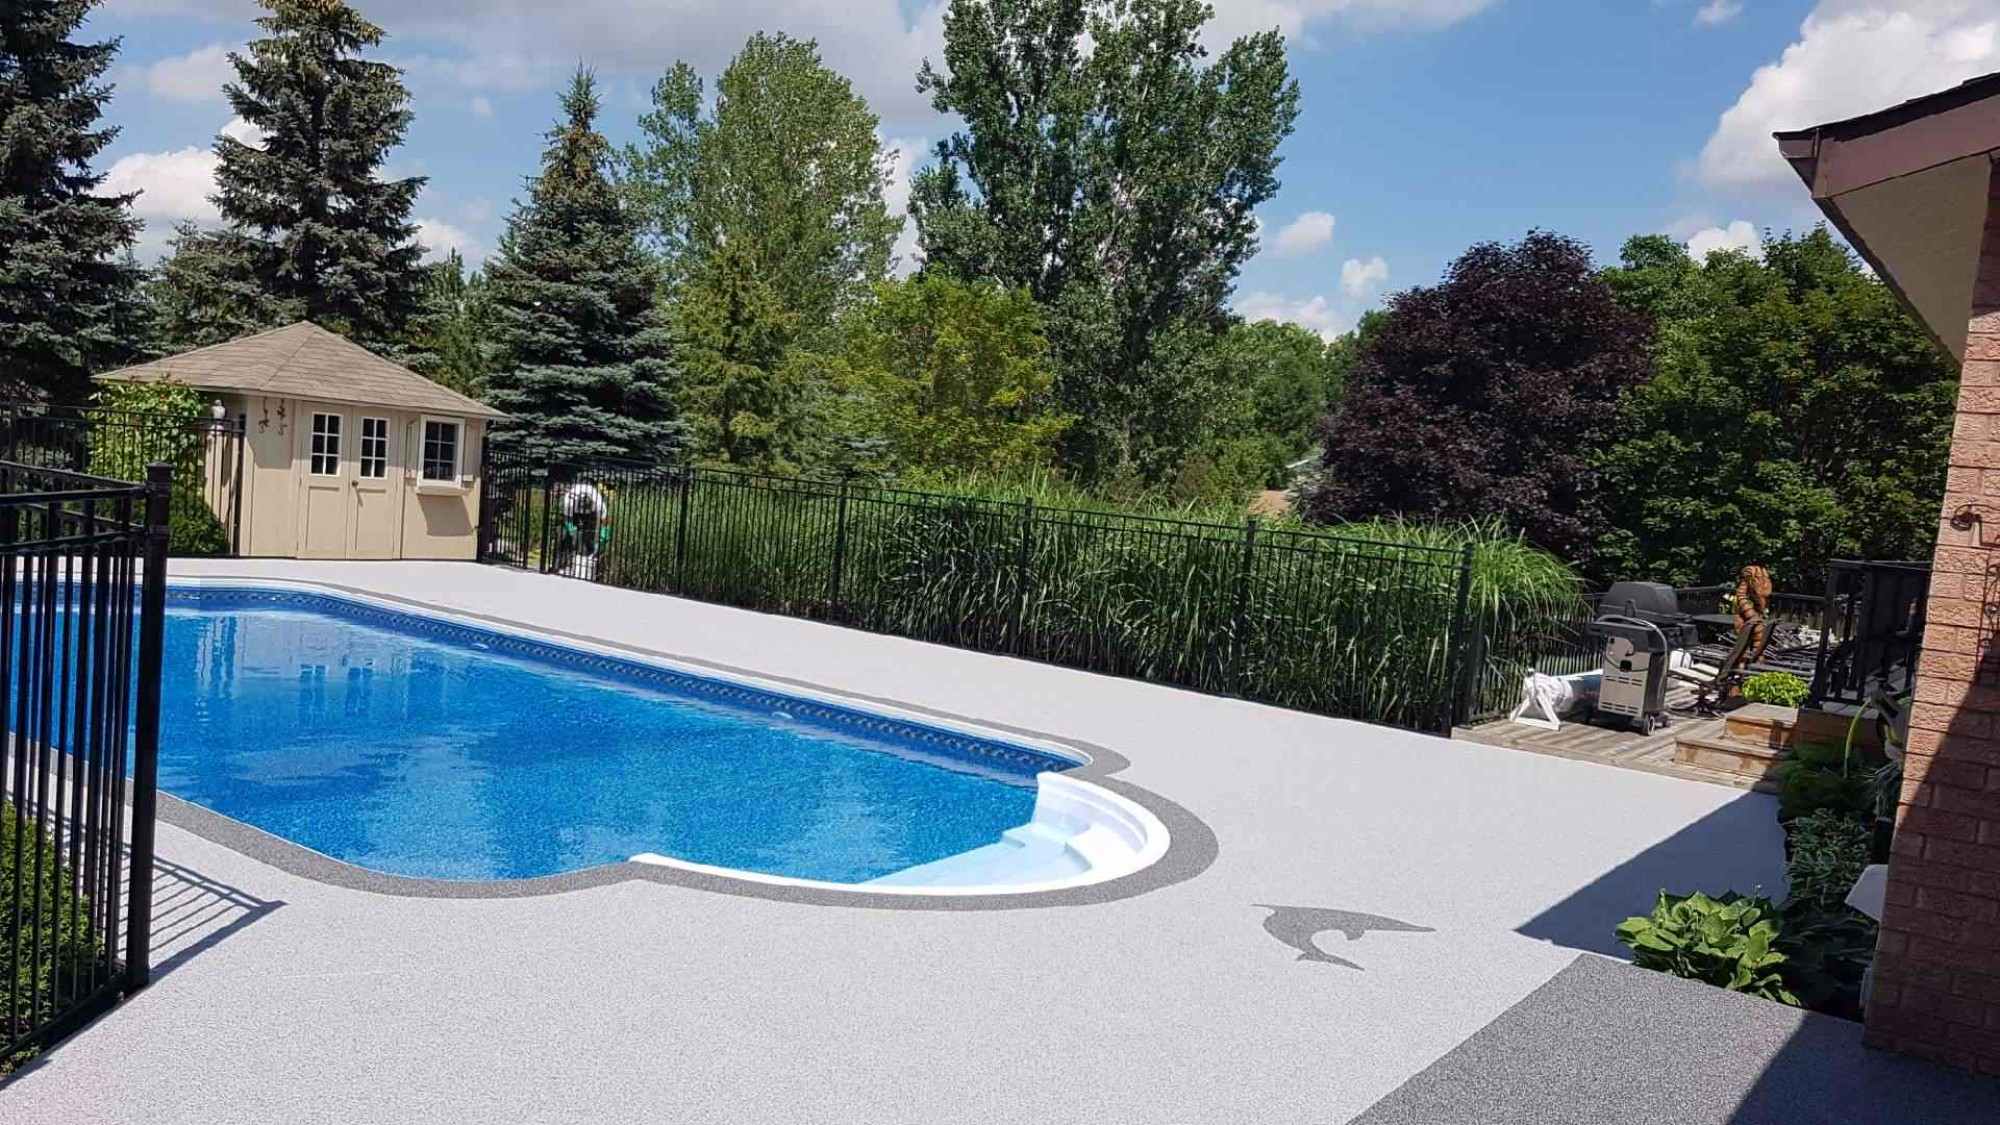 Before & After Indoor Pool Deck Rubber Surfacing